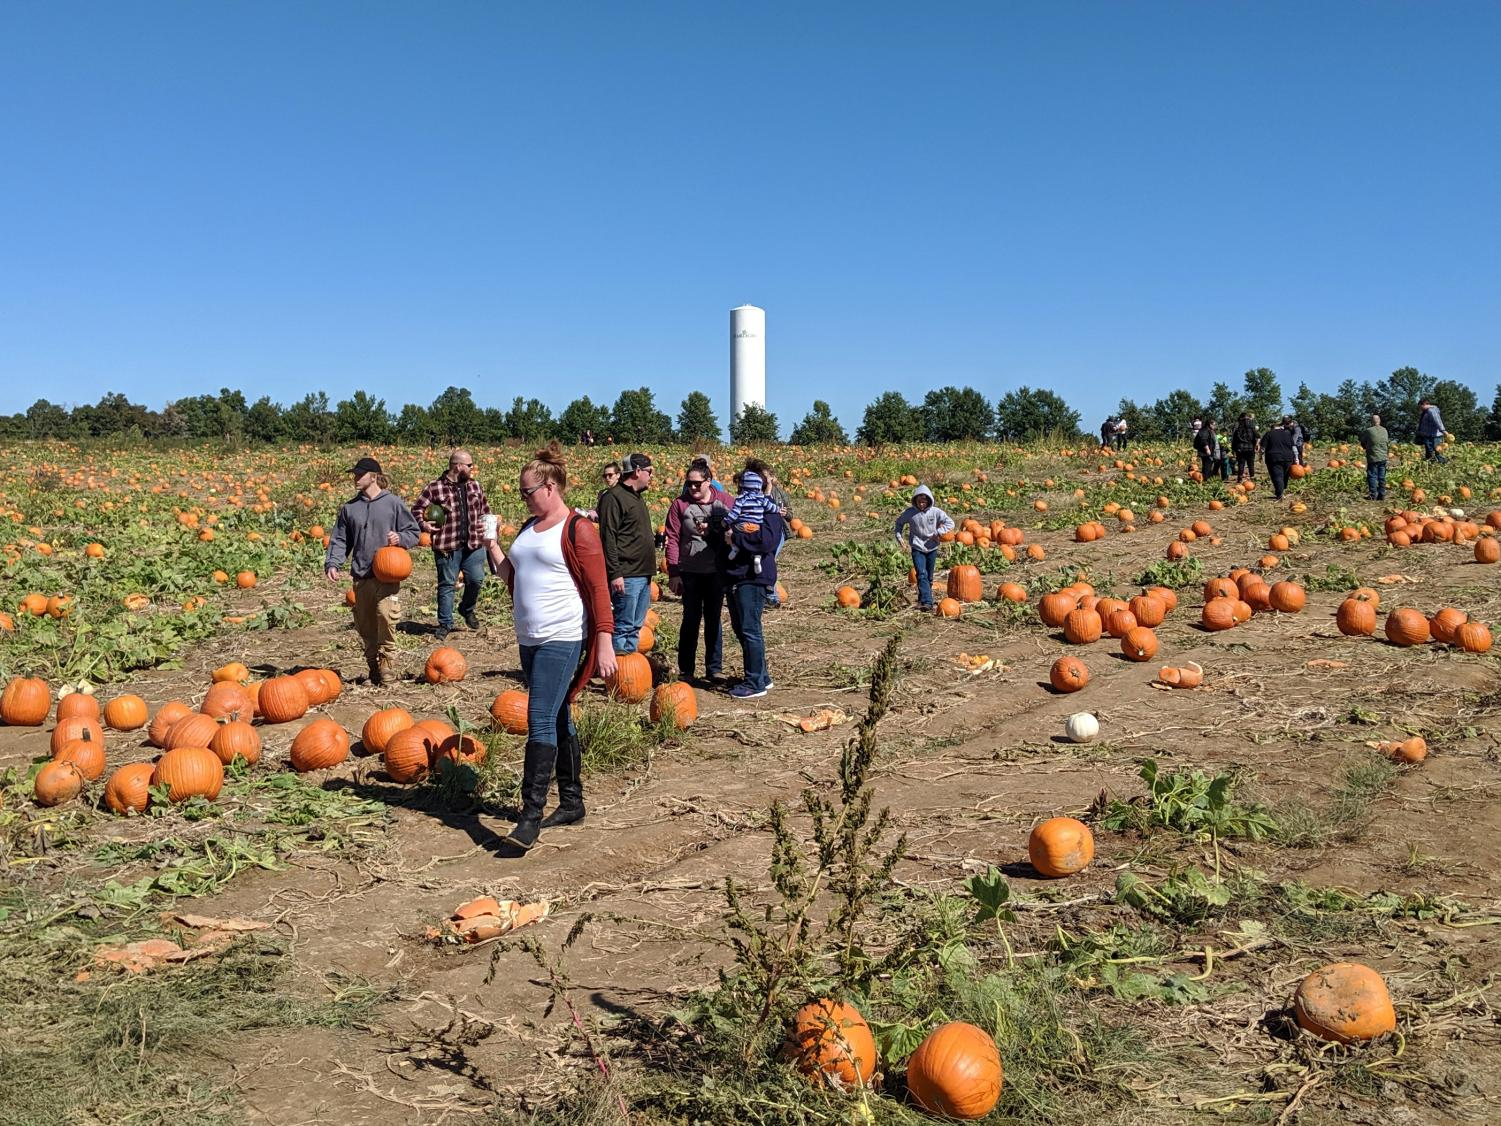 The Starlight water tower overlooks a pumpkin patch as families search diligently for the perfect pumpkin